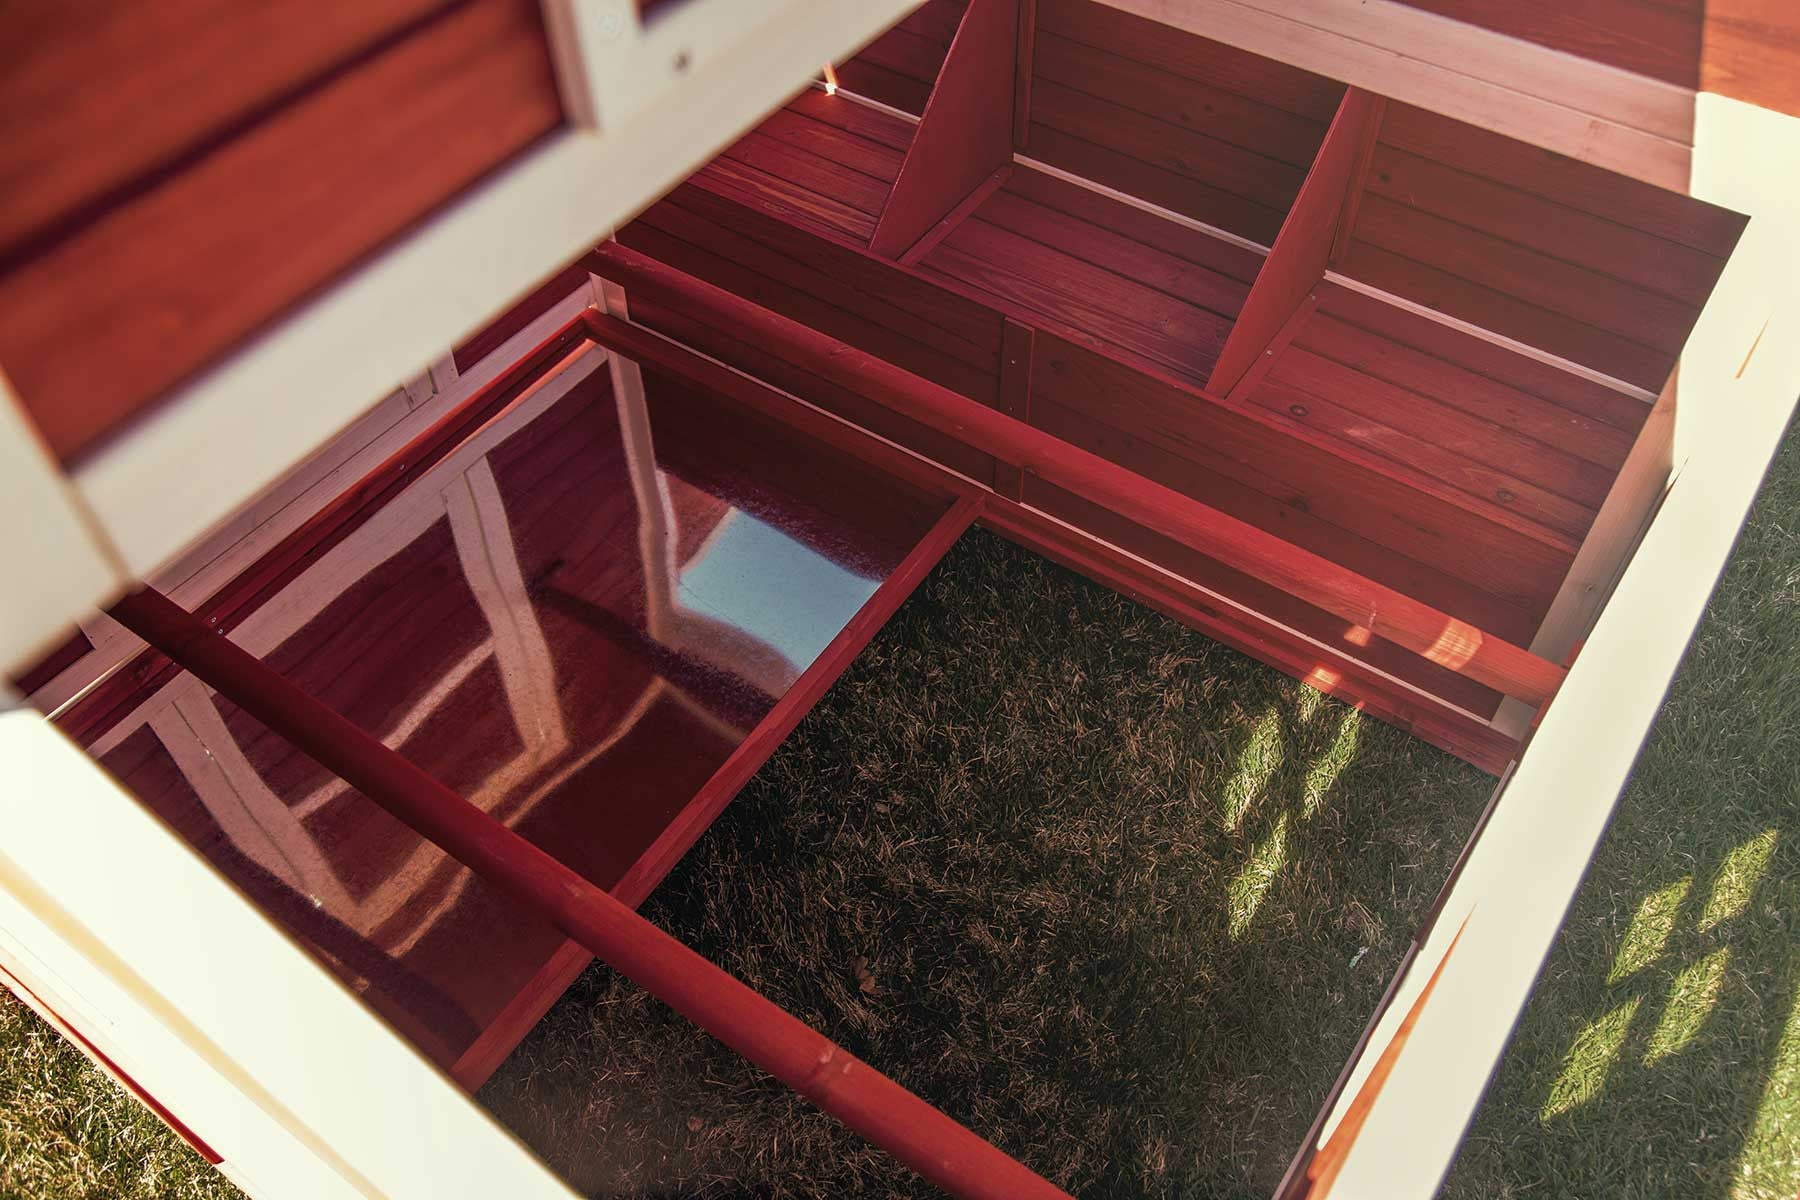 An interior view of the Schoolhouse chicken coop, showing roosting bars, sliding mess pans, and three nesting areas